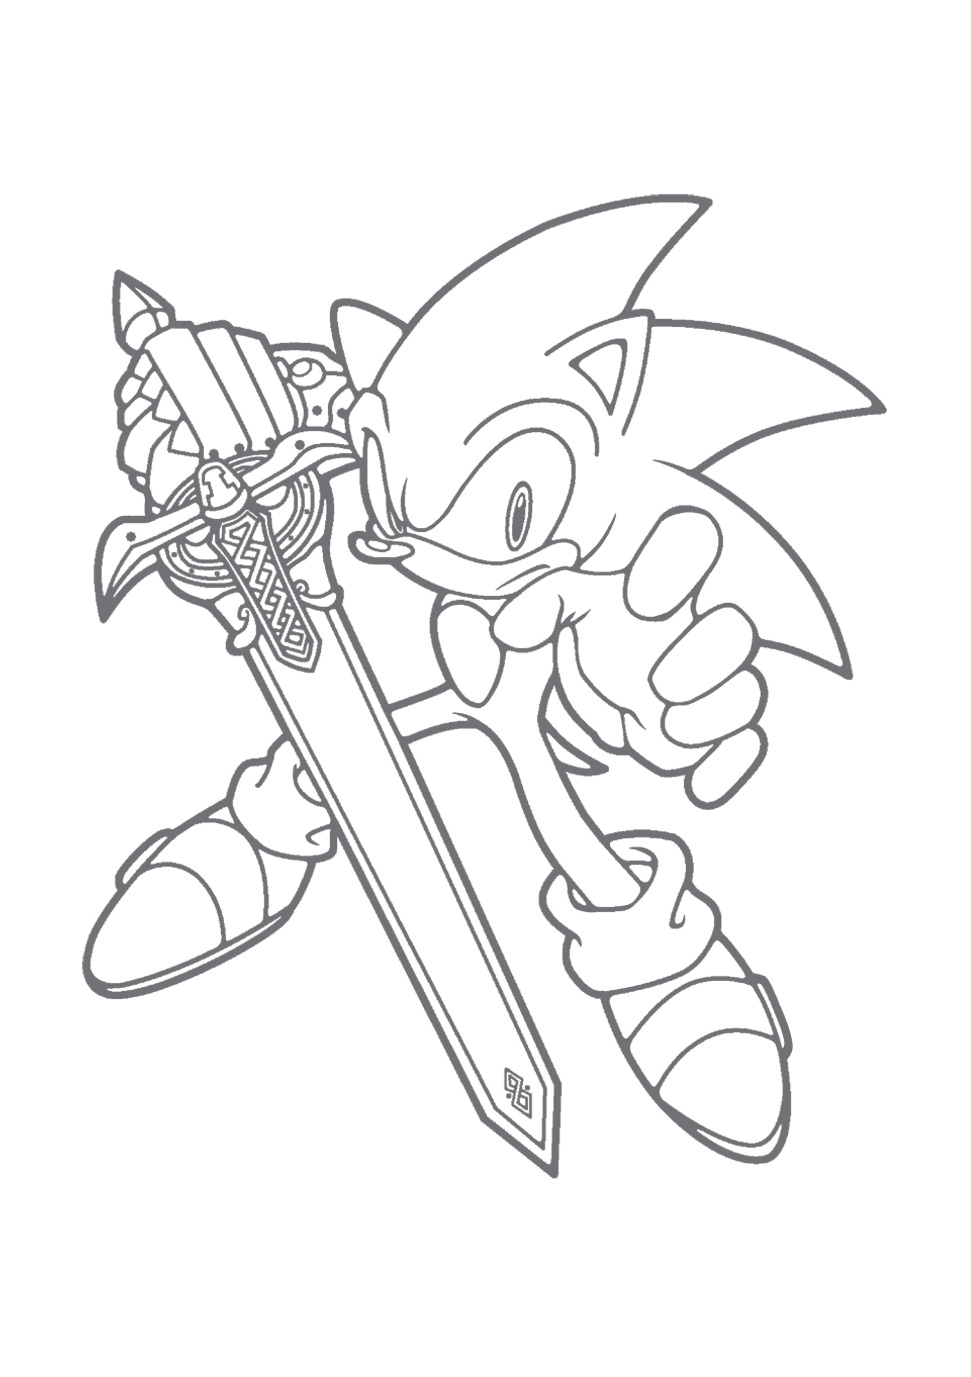 sonic christmas coloring pages - photo#32